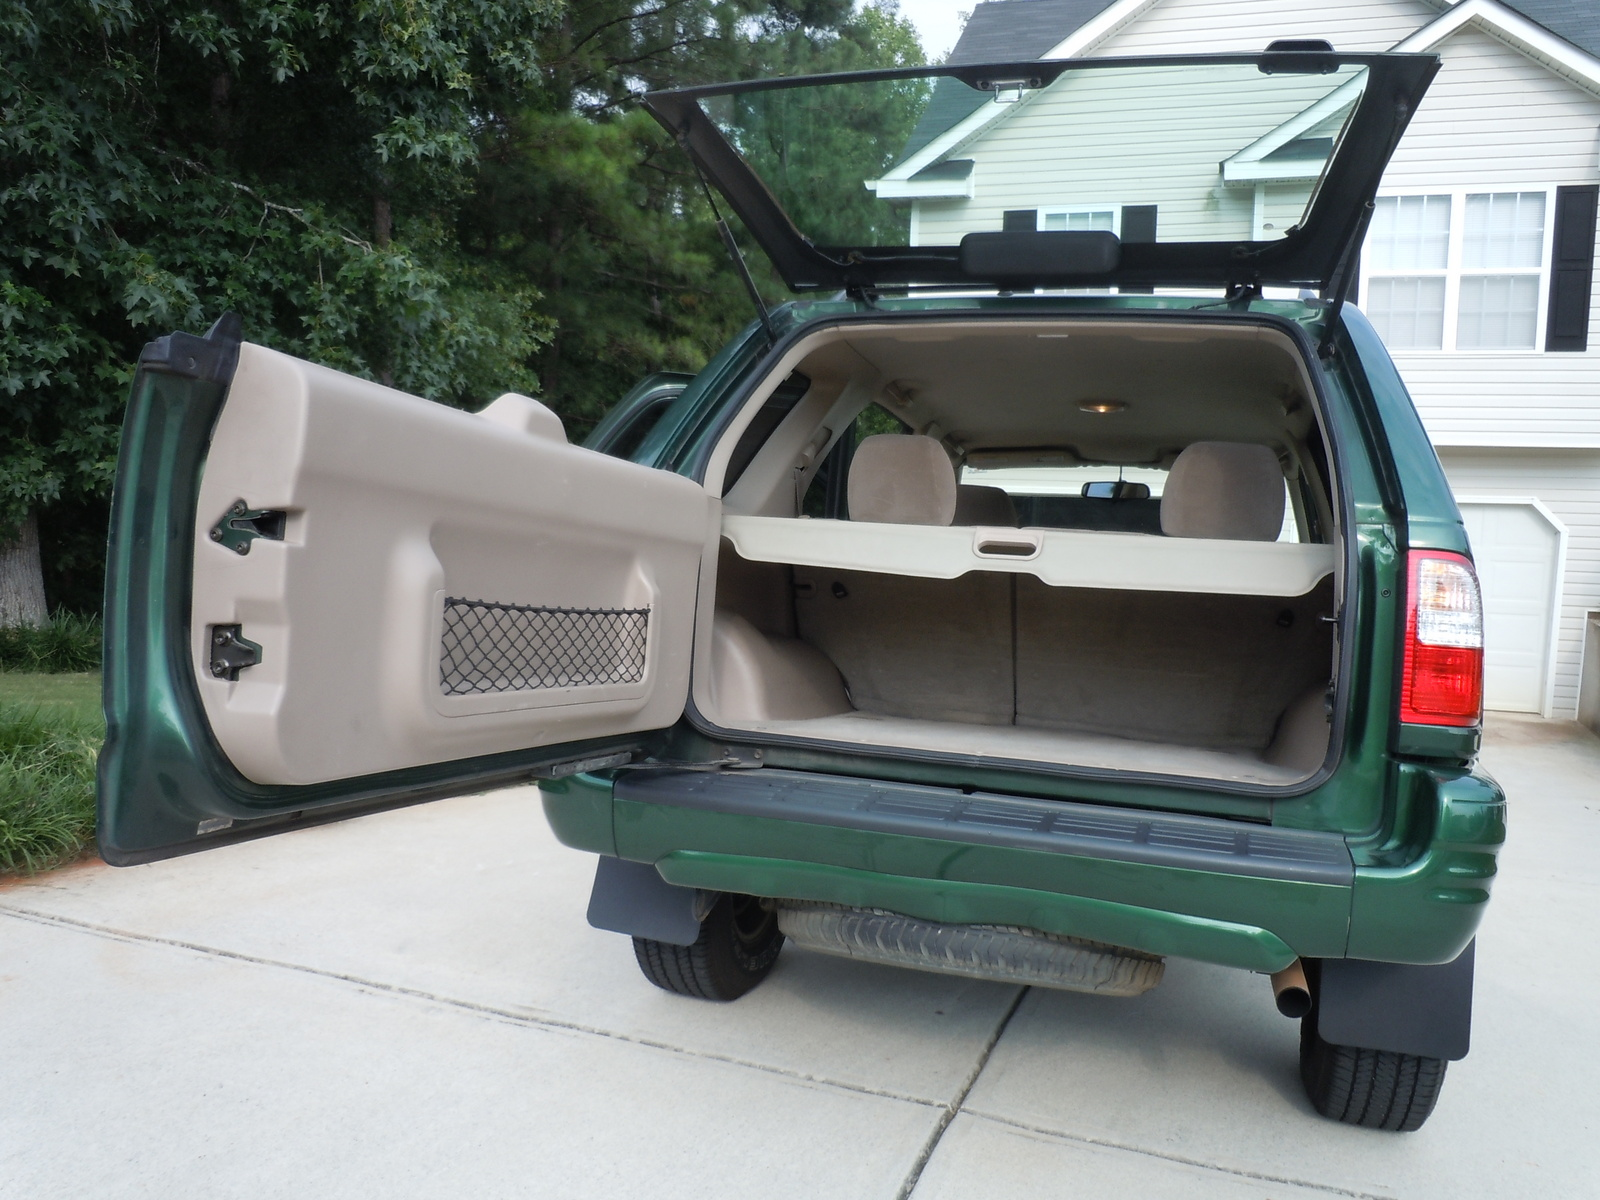 2001 isuzu rodeo sport information and photos zombiedrive. Black Bedroom Furniture Sets. Home Design Ideas